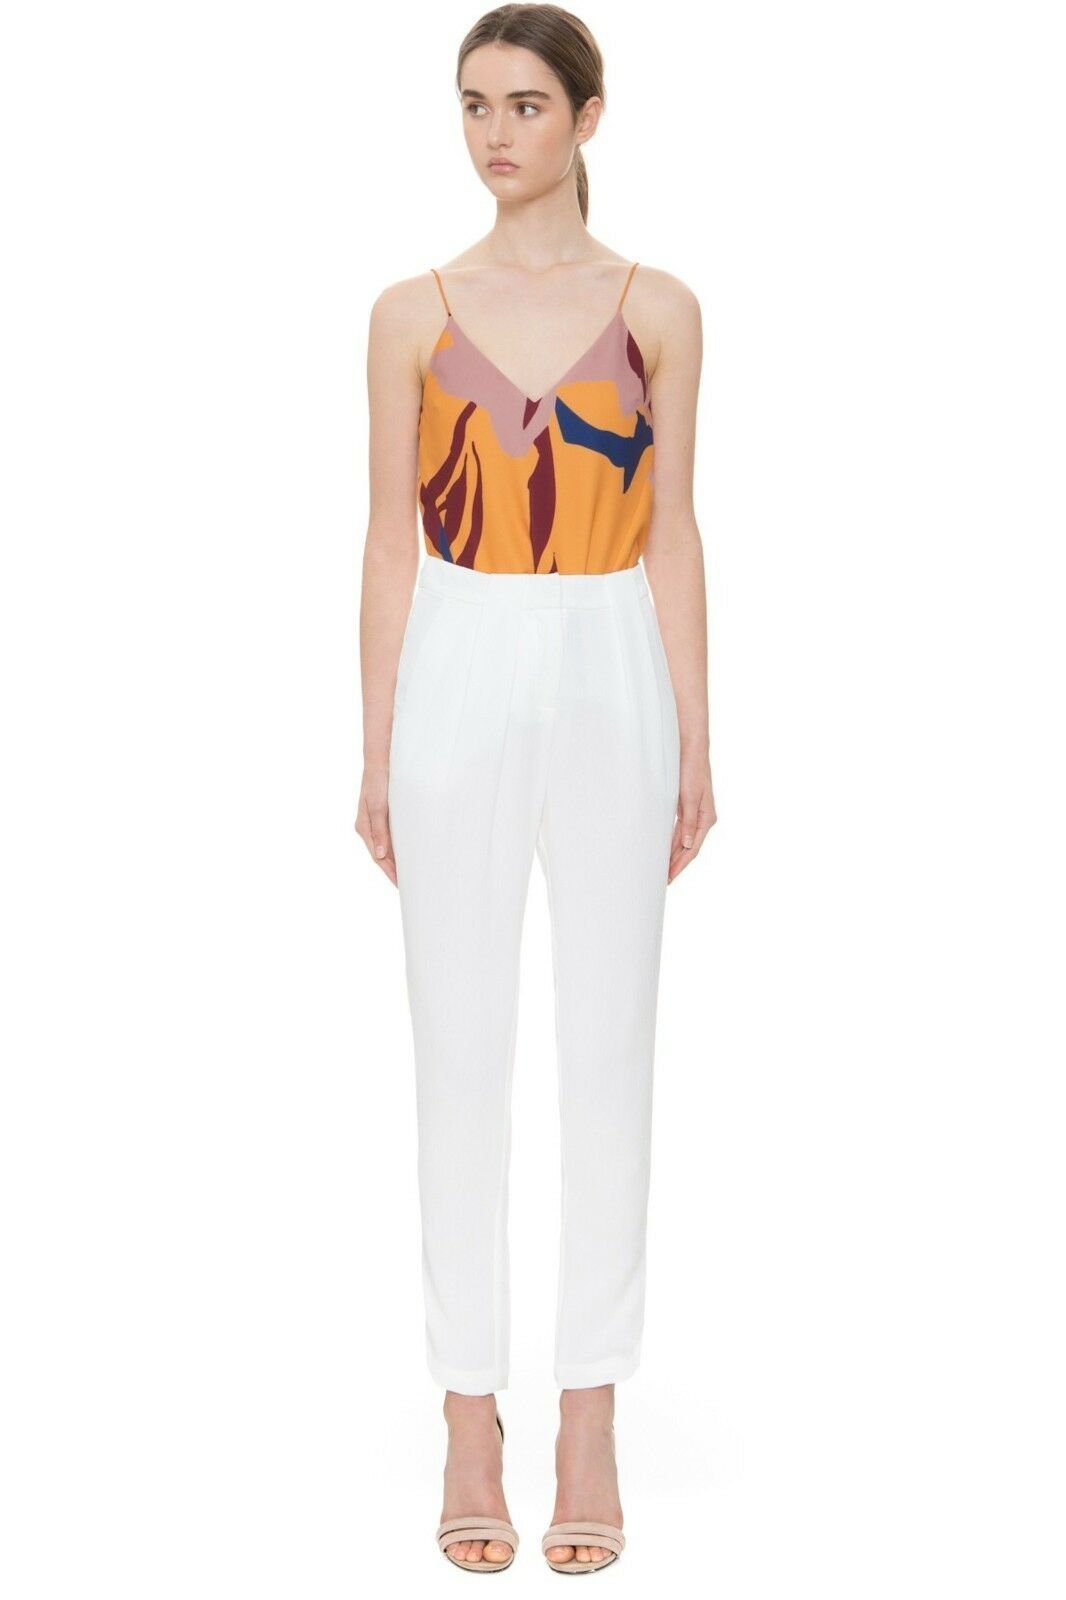 C MEO COLLECTIVE NEXT TIME PANTS Ivory Sz XXS  150 NWT